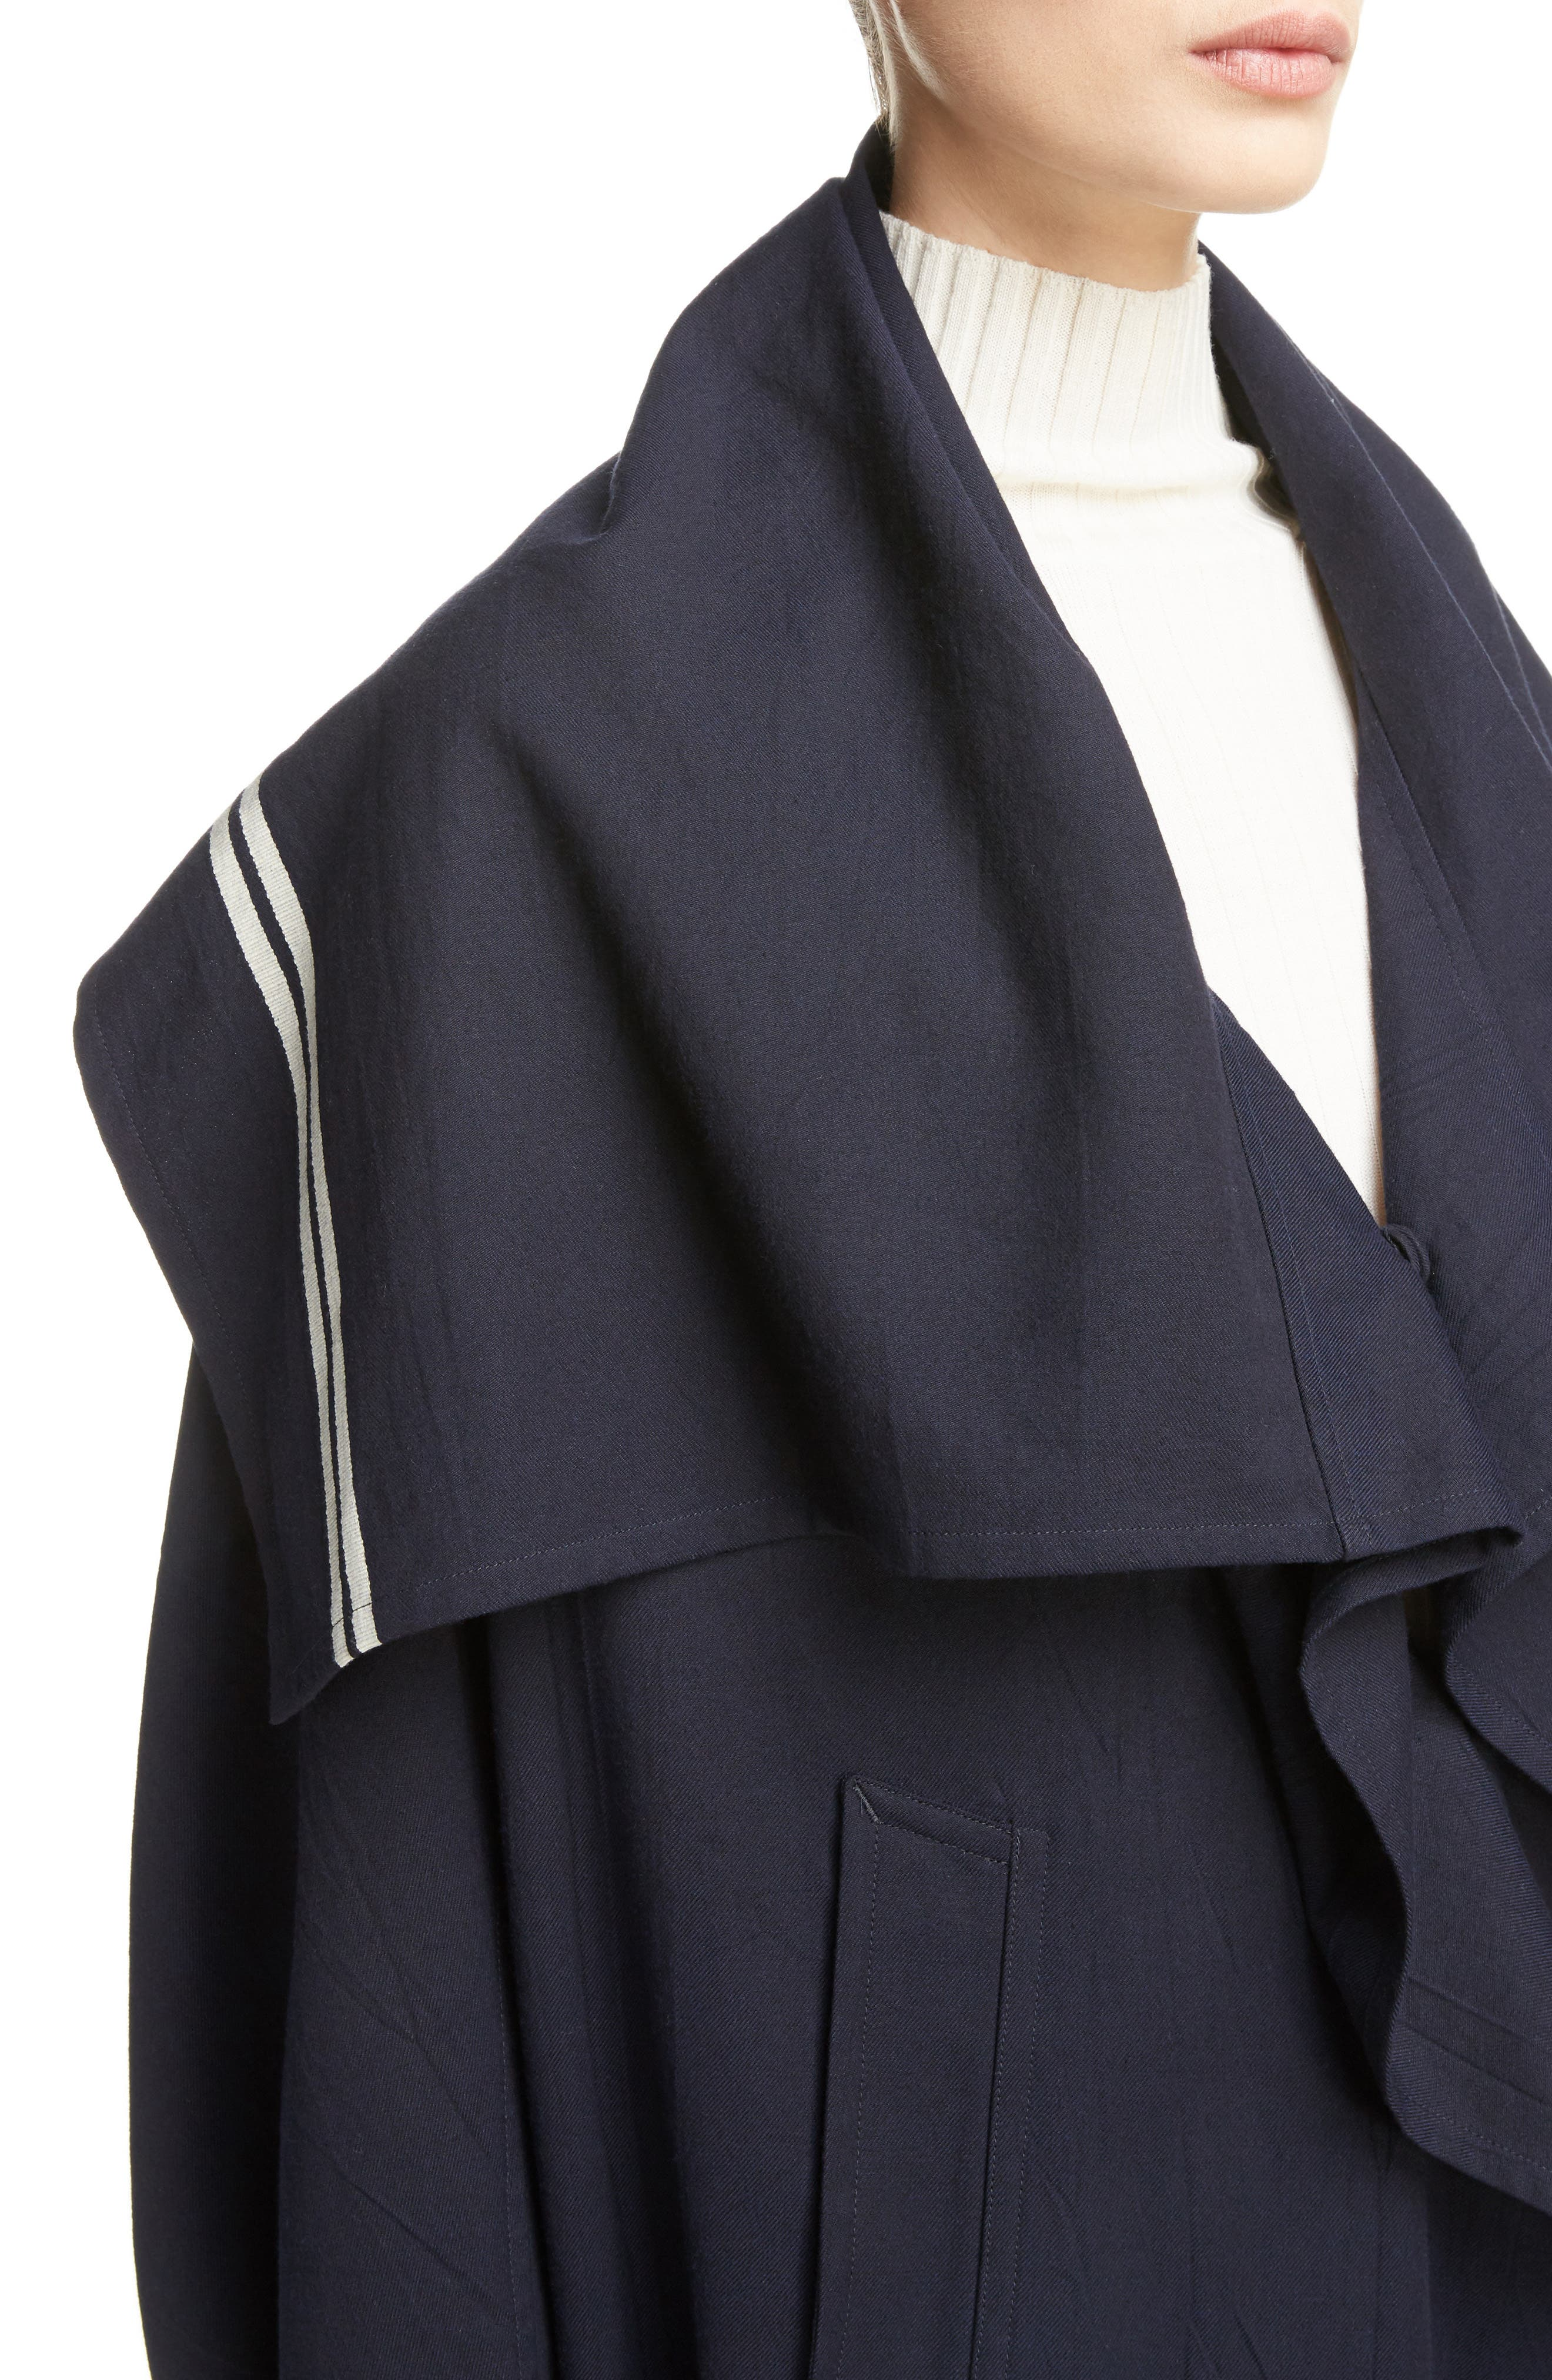 Drape Collar Coat,                             Alternate thumbnail 4, color,                             Navy